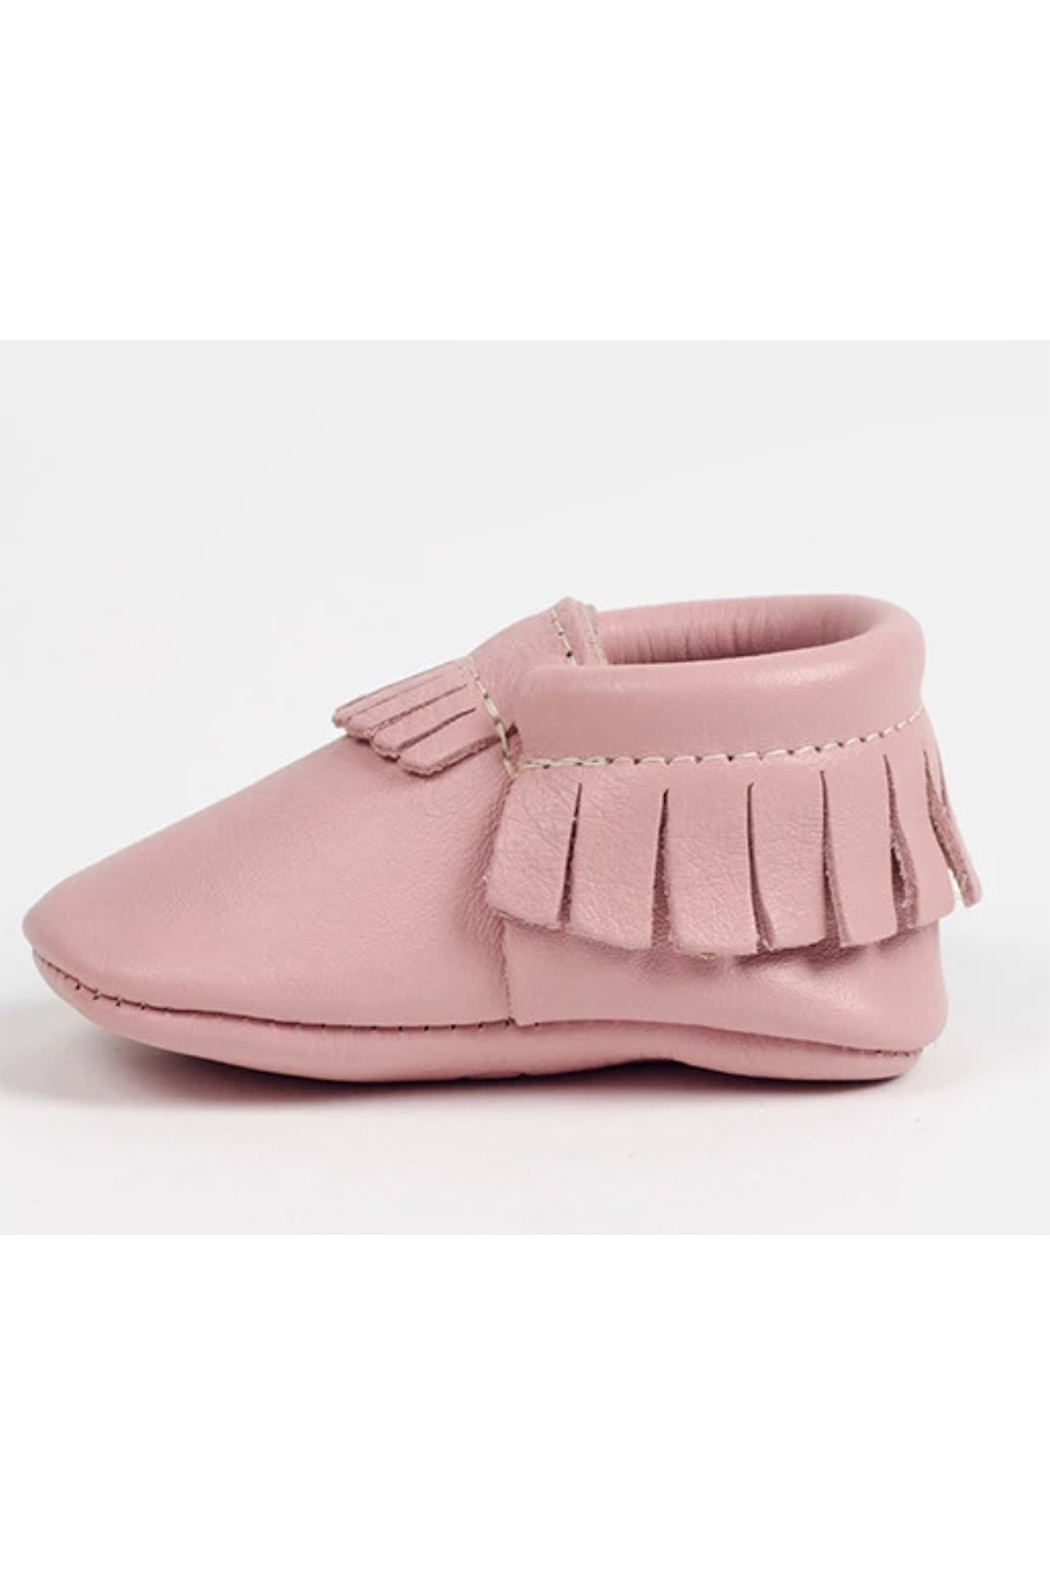 Freshly Picked Blush Moccasins - Front Cropped Image